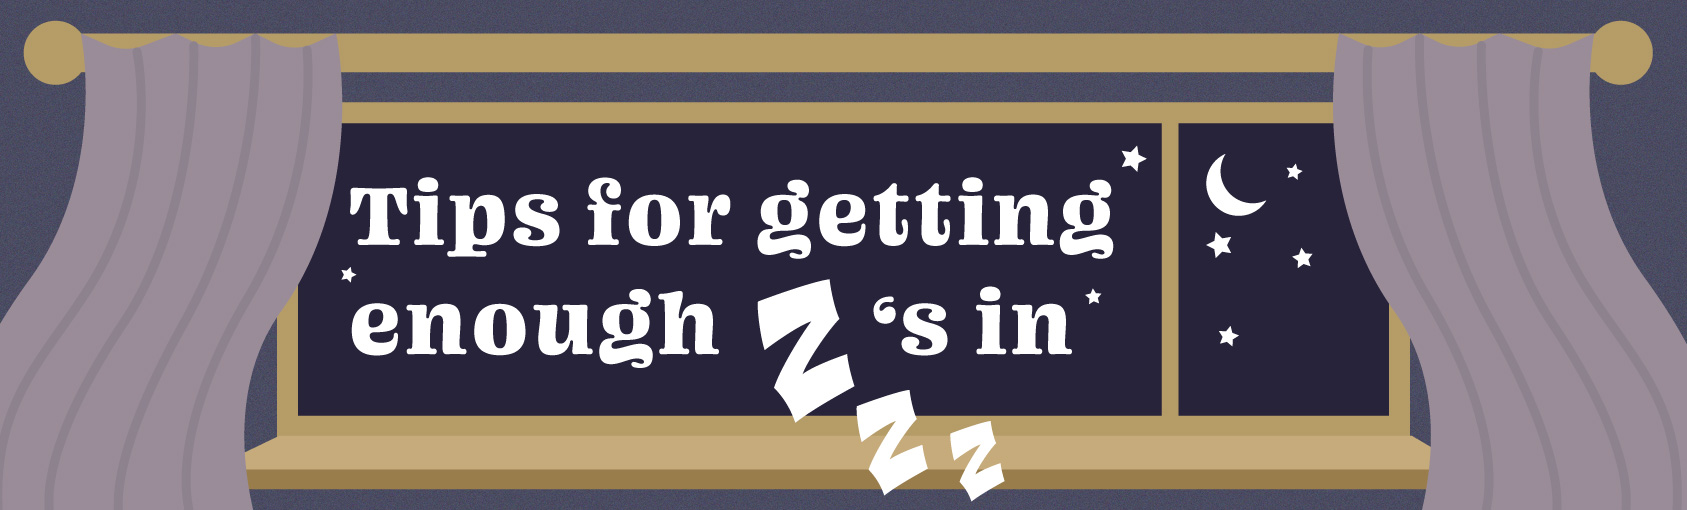 This is a poster about tips for getting enough sleep